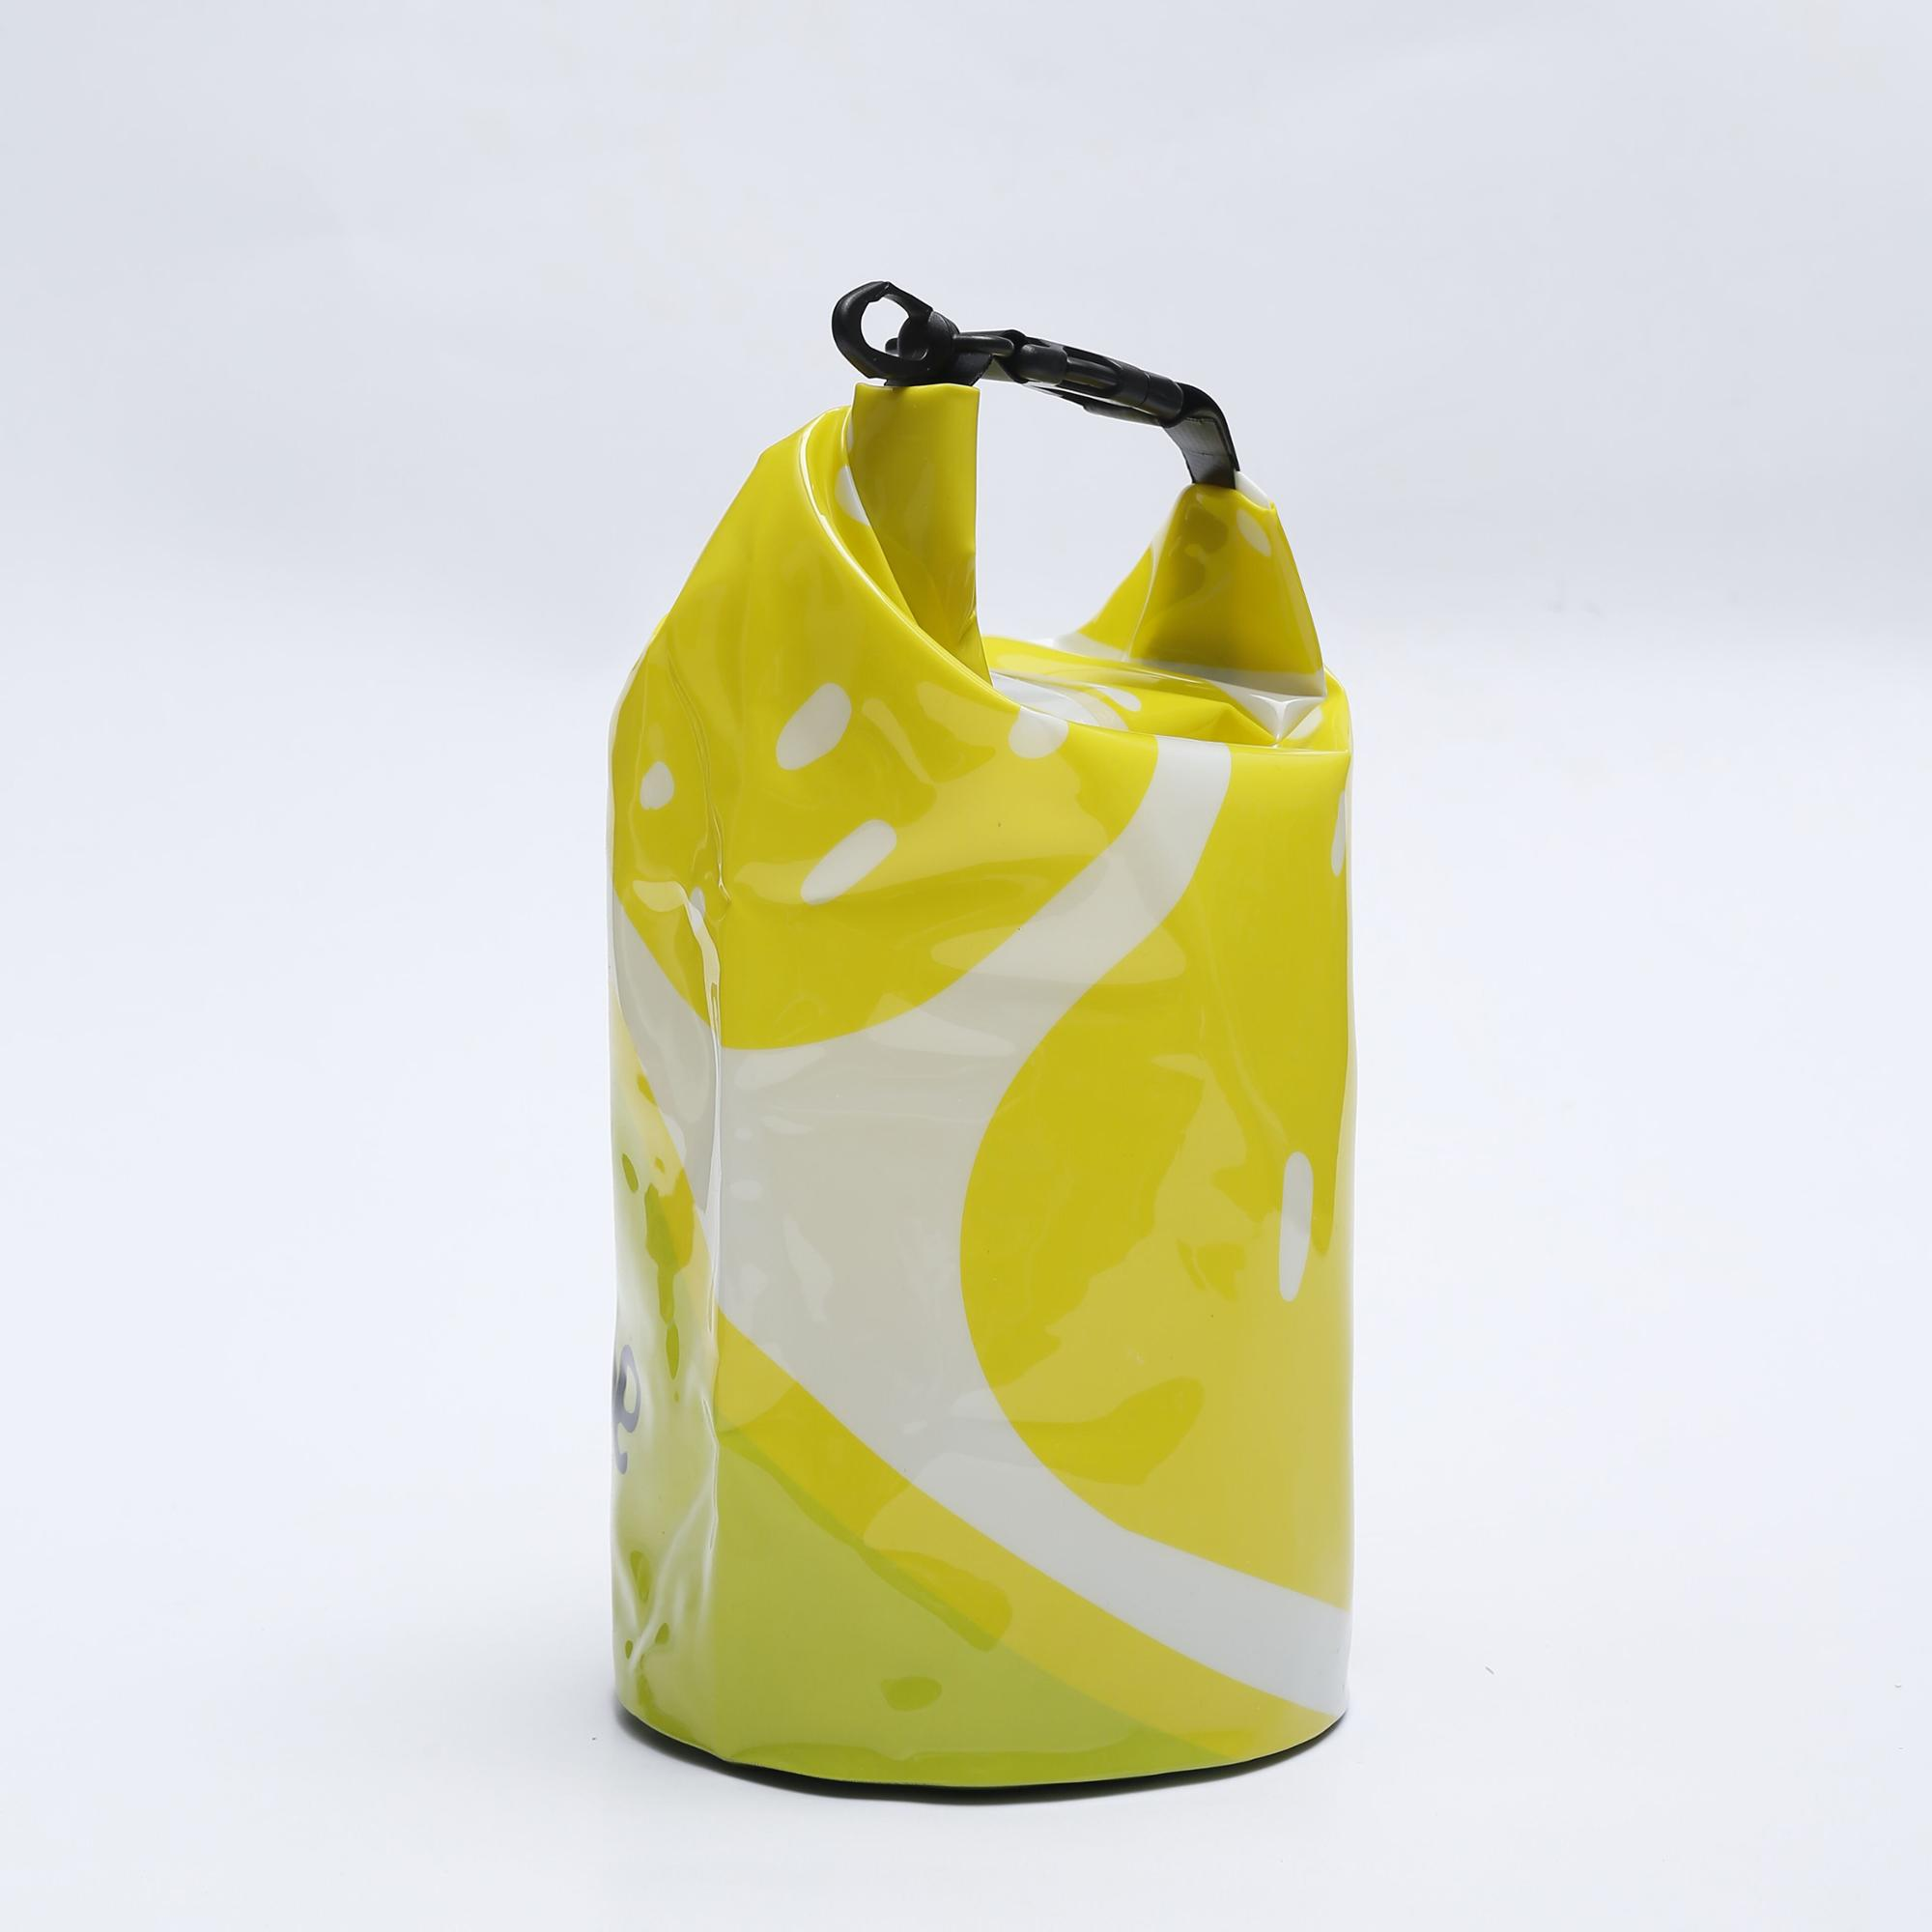 Newest 5L 10L 20L PVC Film Printing Pattern Waterproof Dry Bag For Swimming Drifting